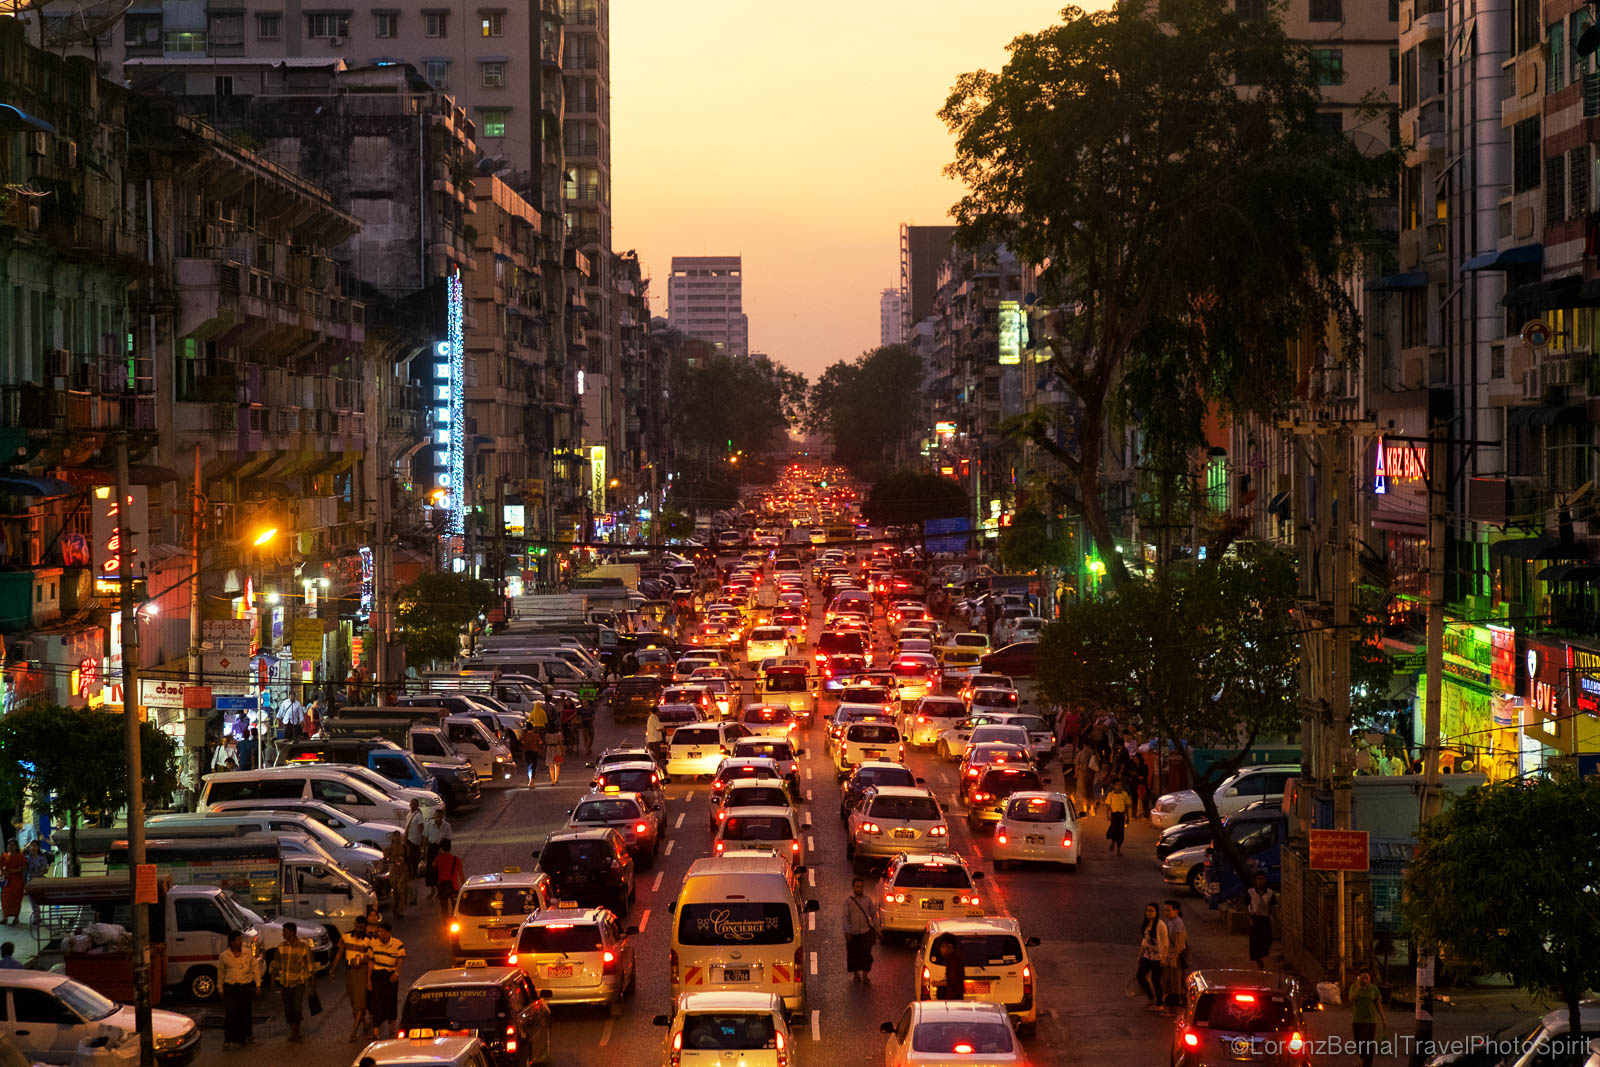 Traffic on the roads, a classic in Yangon streets, at all hours of the day.